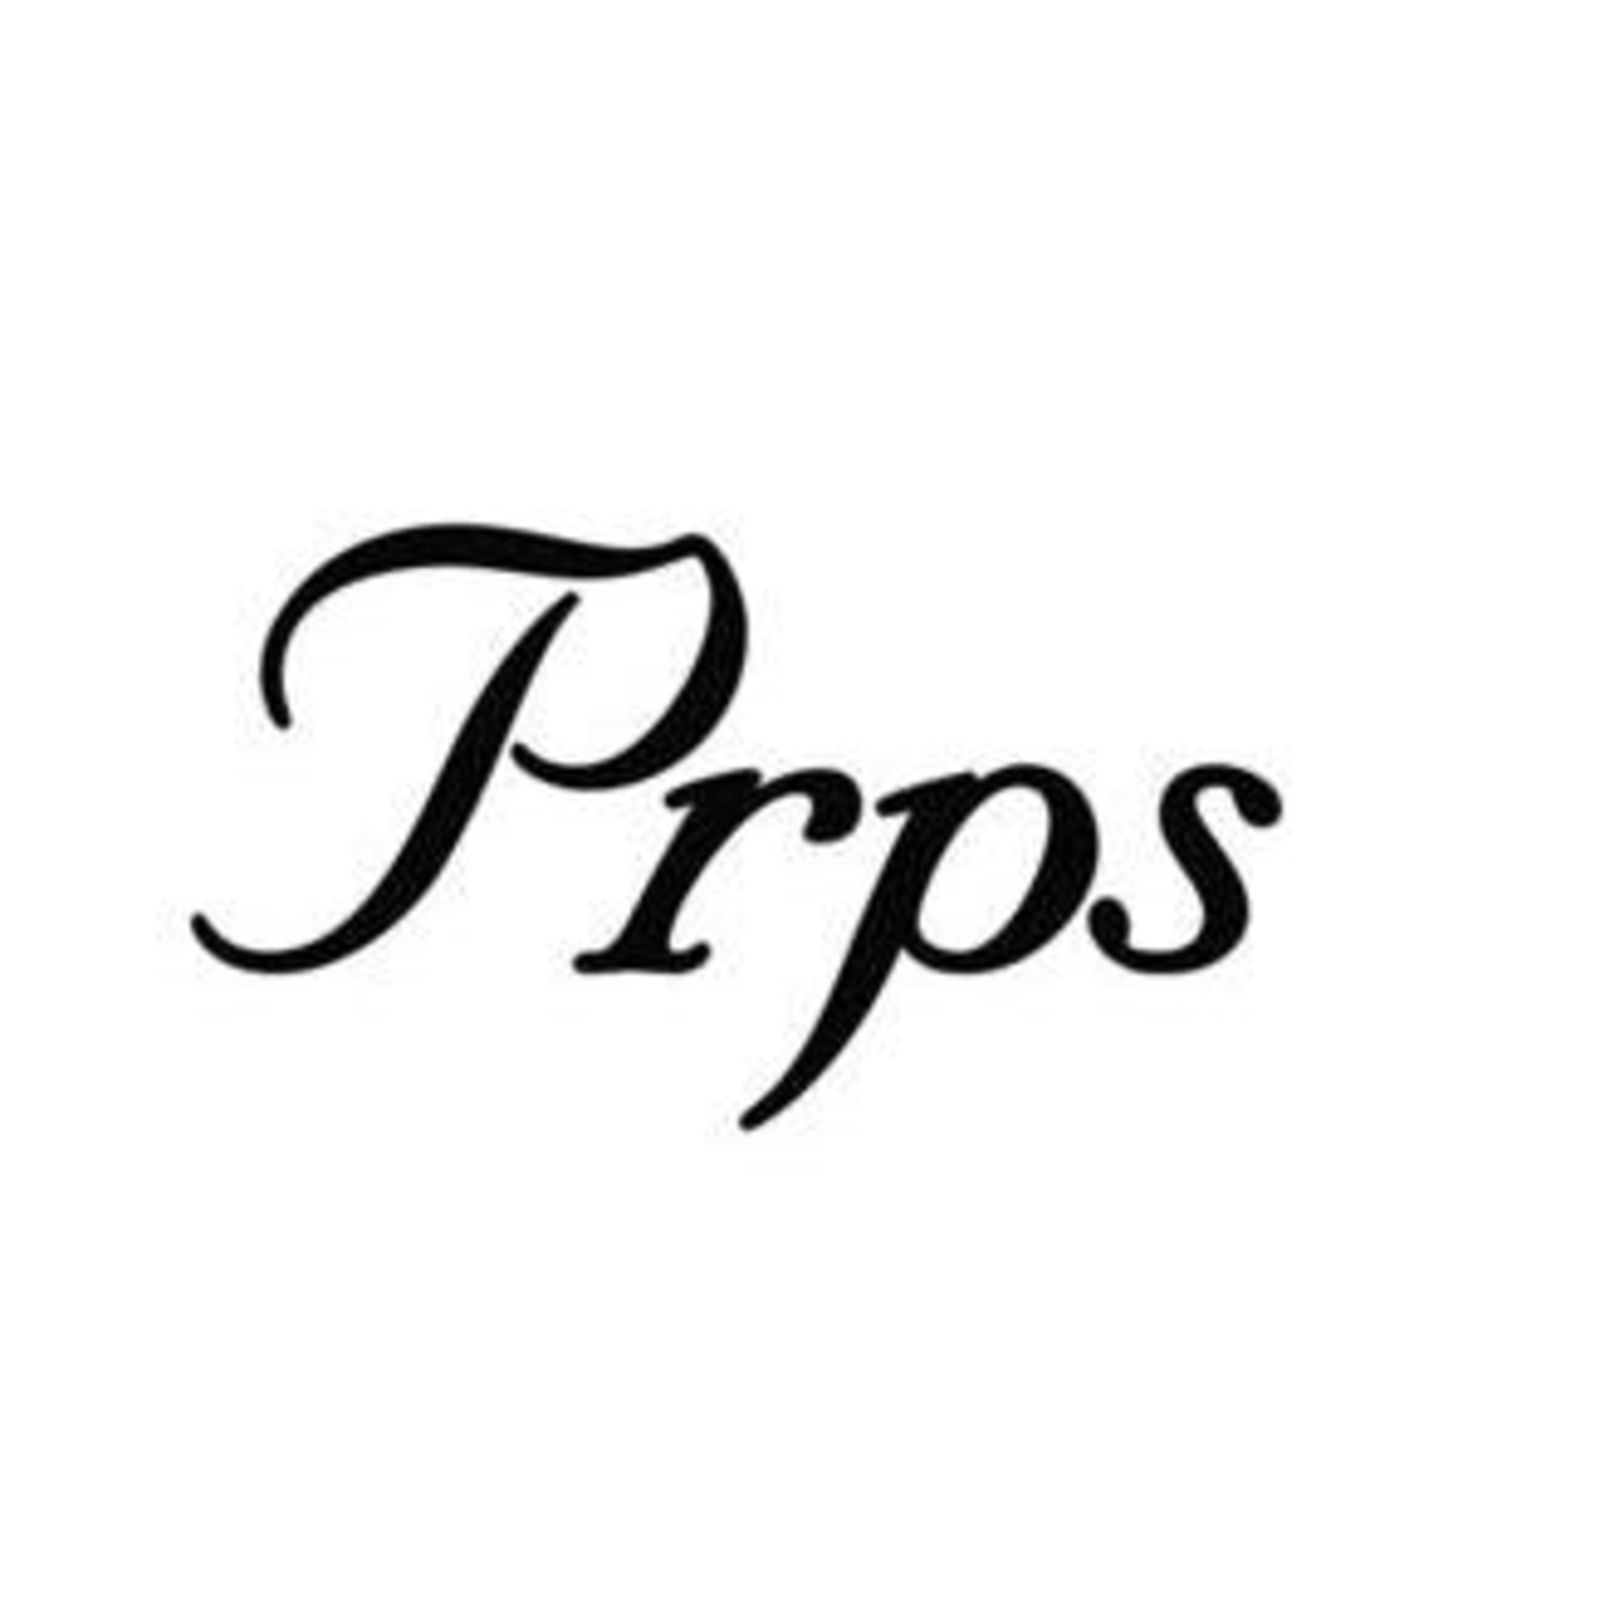 PRPS Goods & Co. (Image 1)